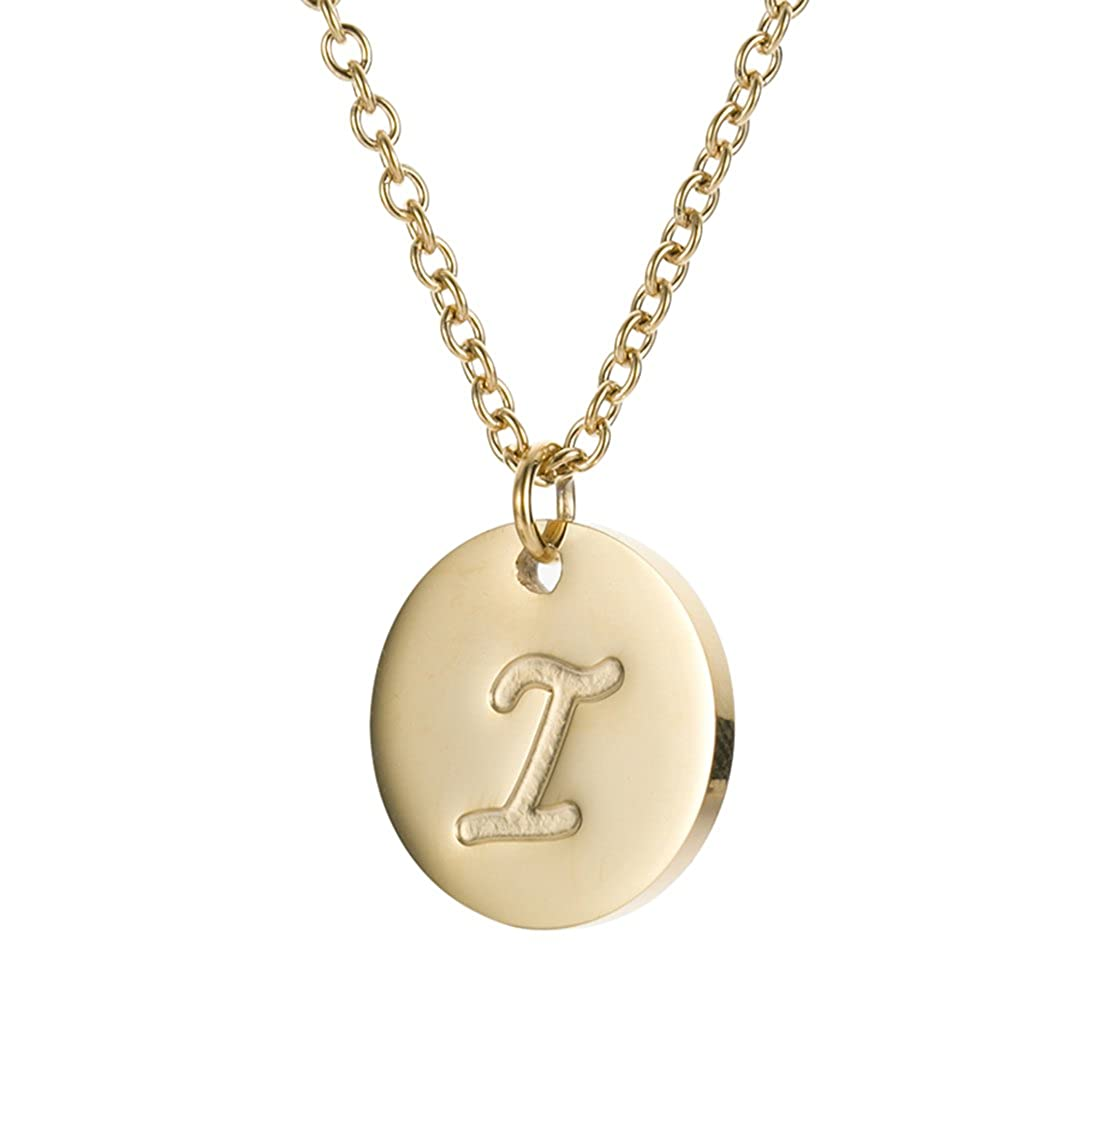 HUAN XUN Initial Necklace Best Friend Necklaces for Girls Stainless Steel, 16 NL-2600 A Gold